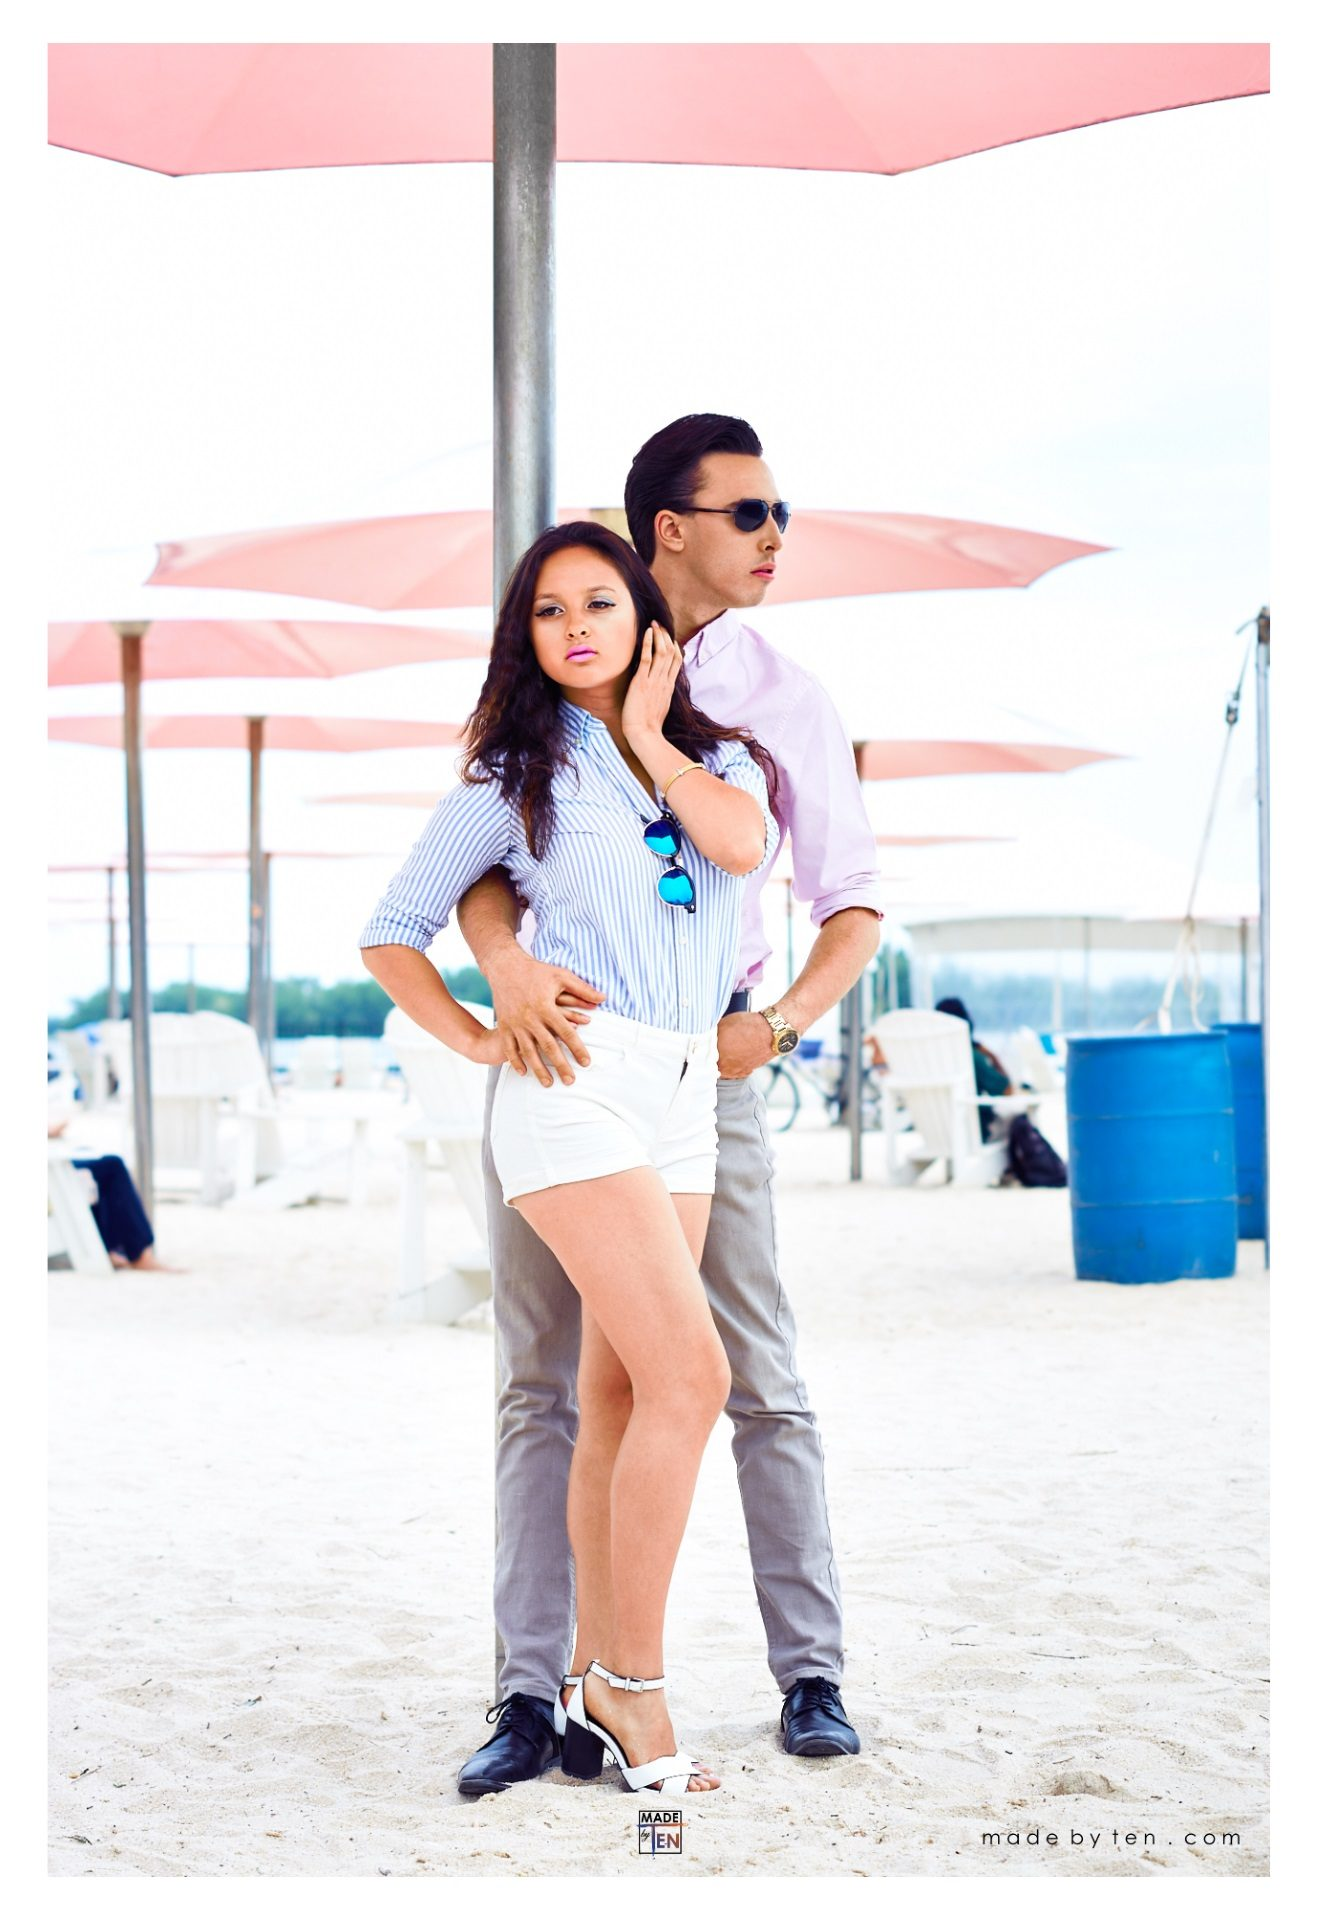 Sugar Beach Couple Fashion Editorial - GTA Women Lifestyle Photography